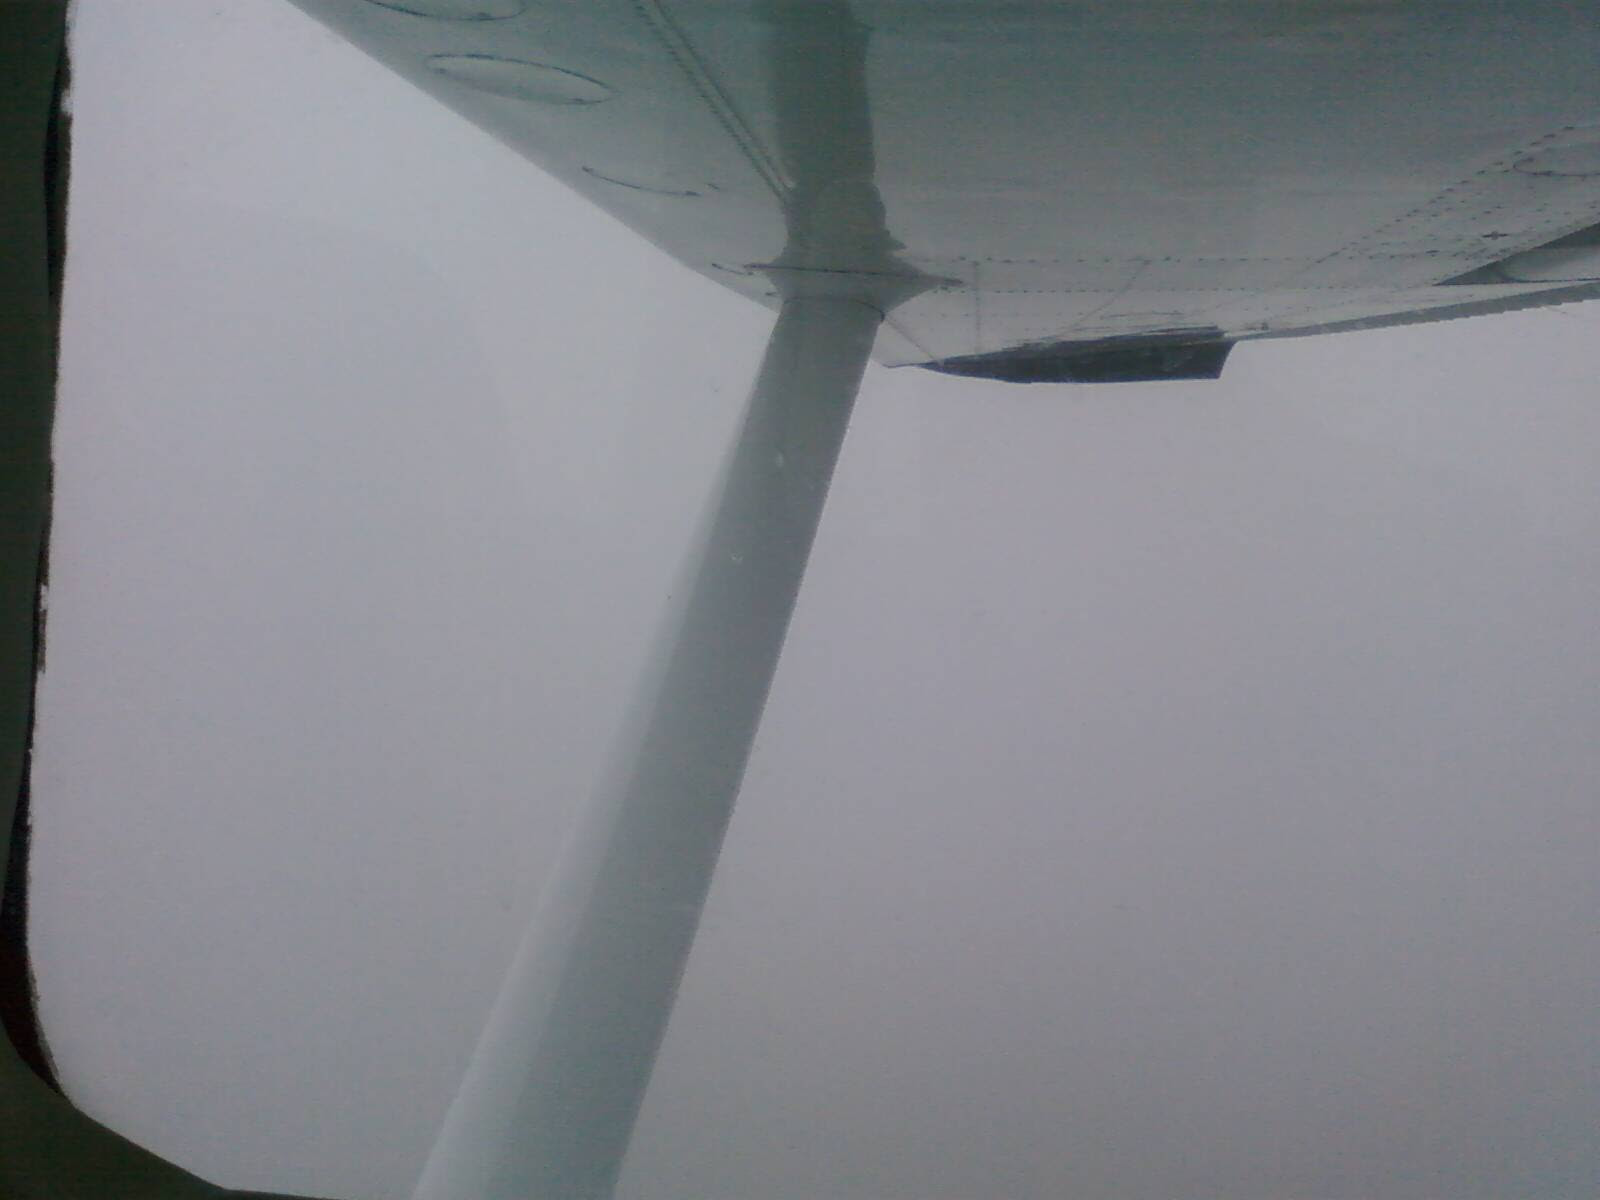 IFR picture